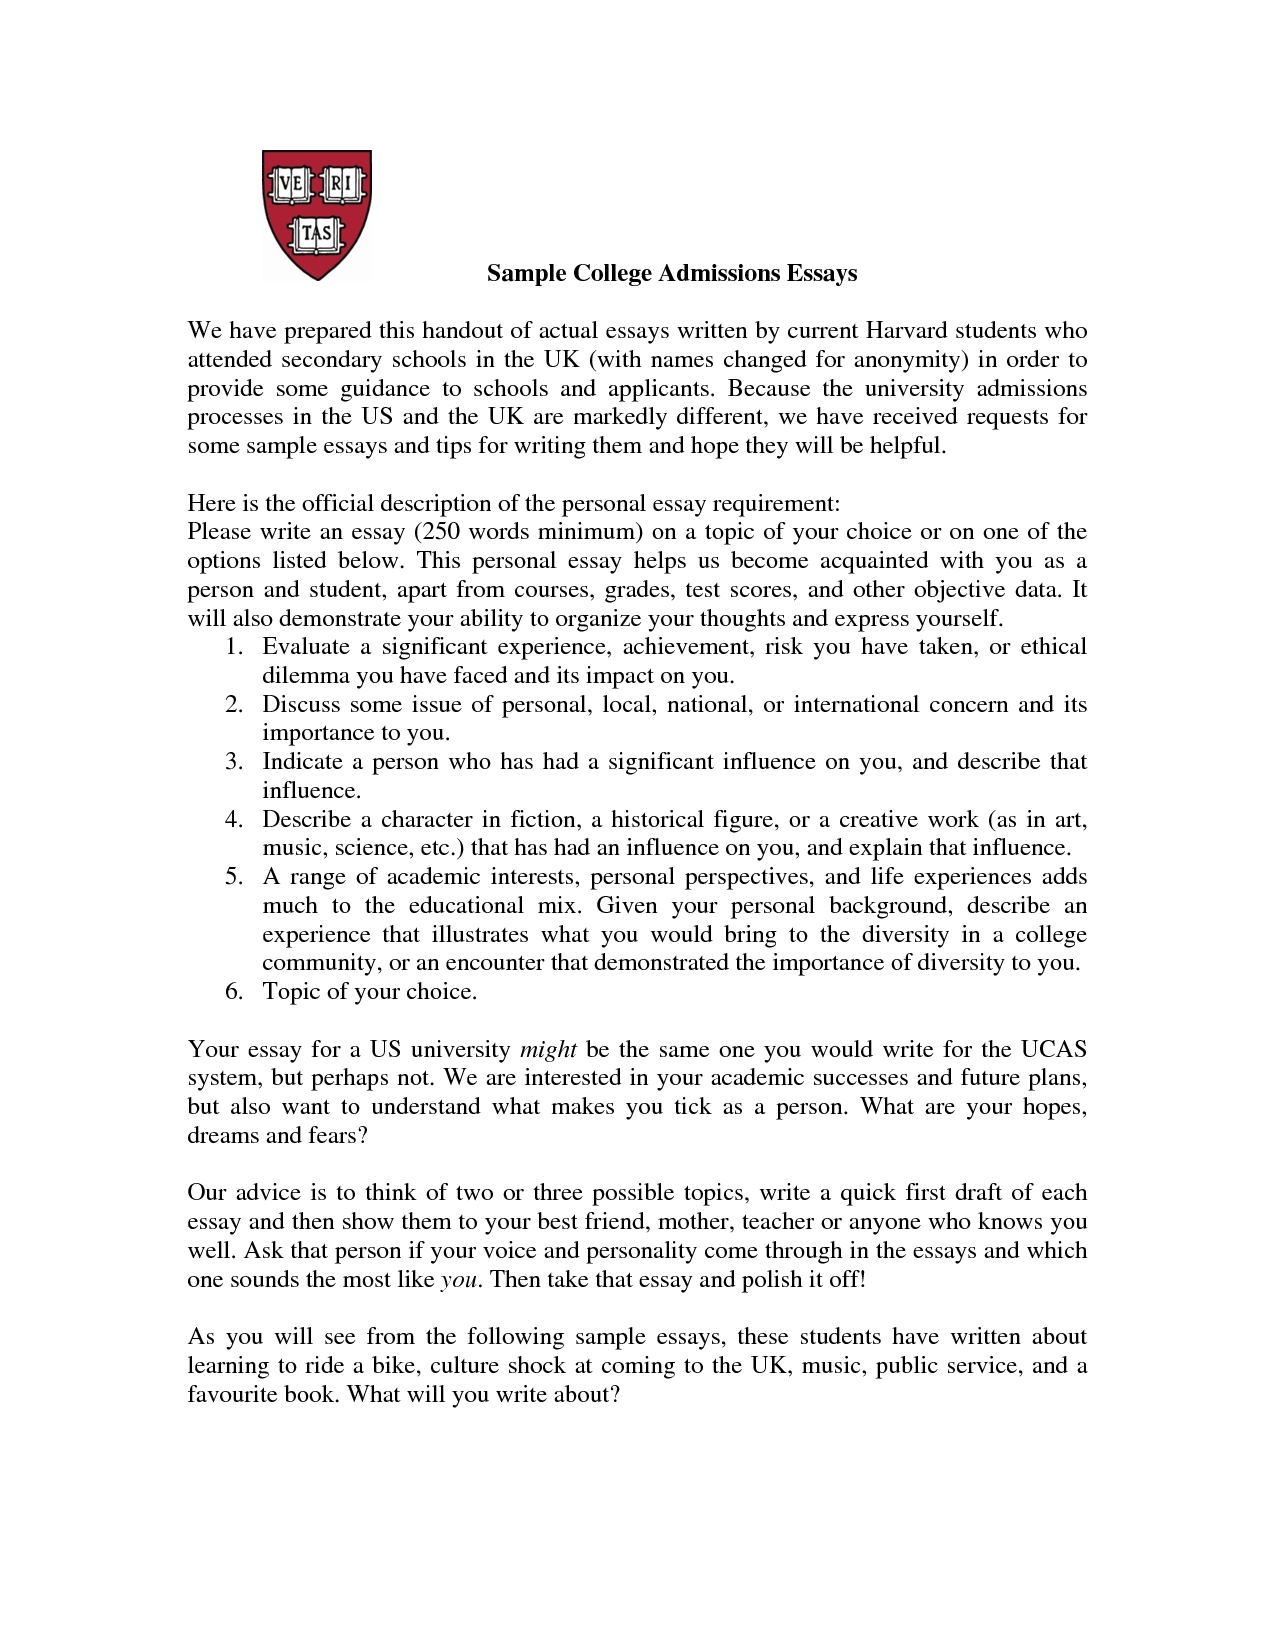 006 College Acceptance Essay Iafr4c5bwr Striking Application Template App Topics Samples Full